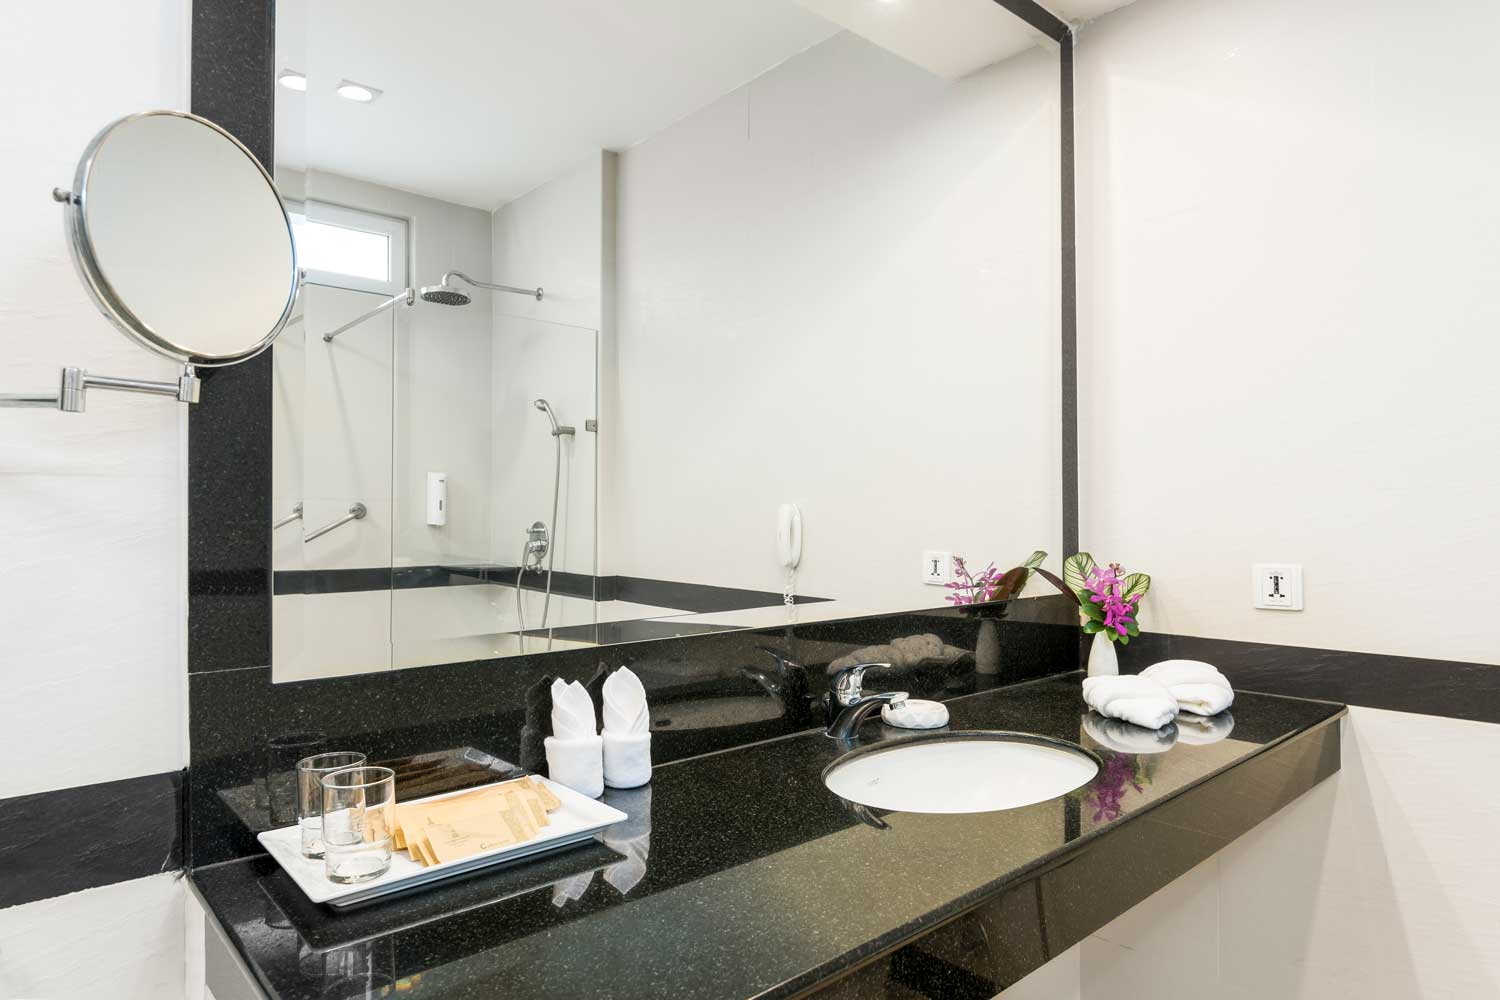 The bathroom of a One-Bedroom apartment hotel room with a garden view of the Thai Garden Resort in Pattaya, Thailand